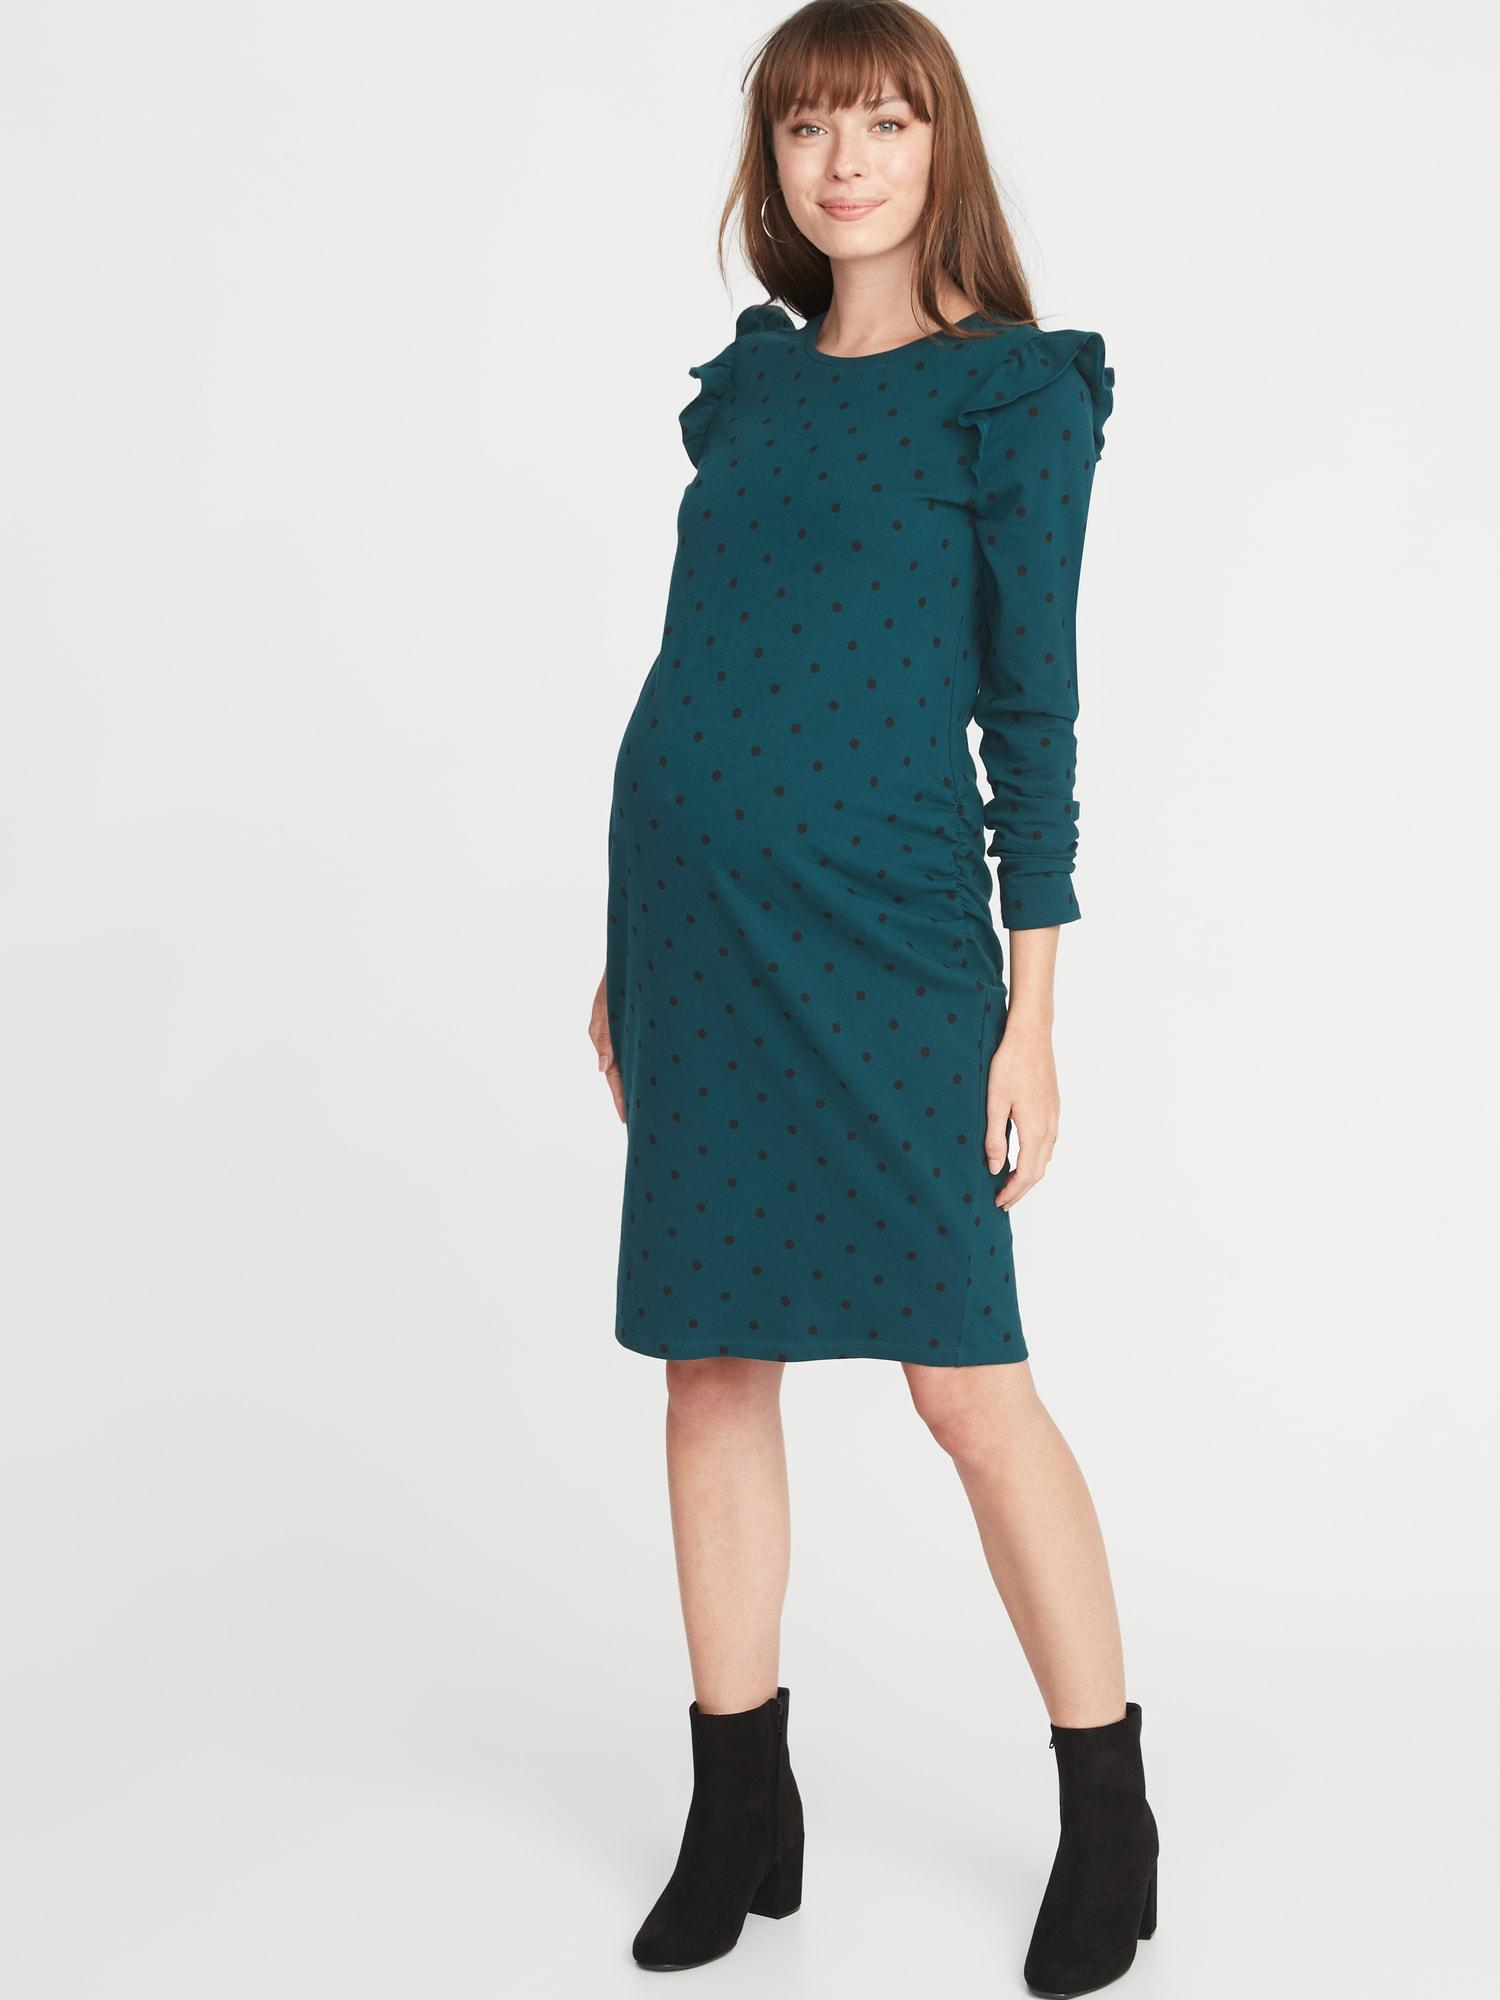 ef7ad1e6755 Lyst - Old Navy Maternity Ruffle-shoulder Bodycon Dress in Green